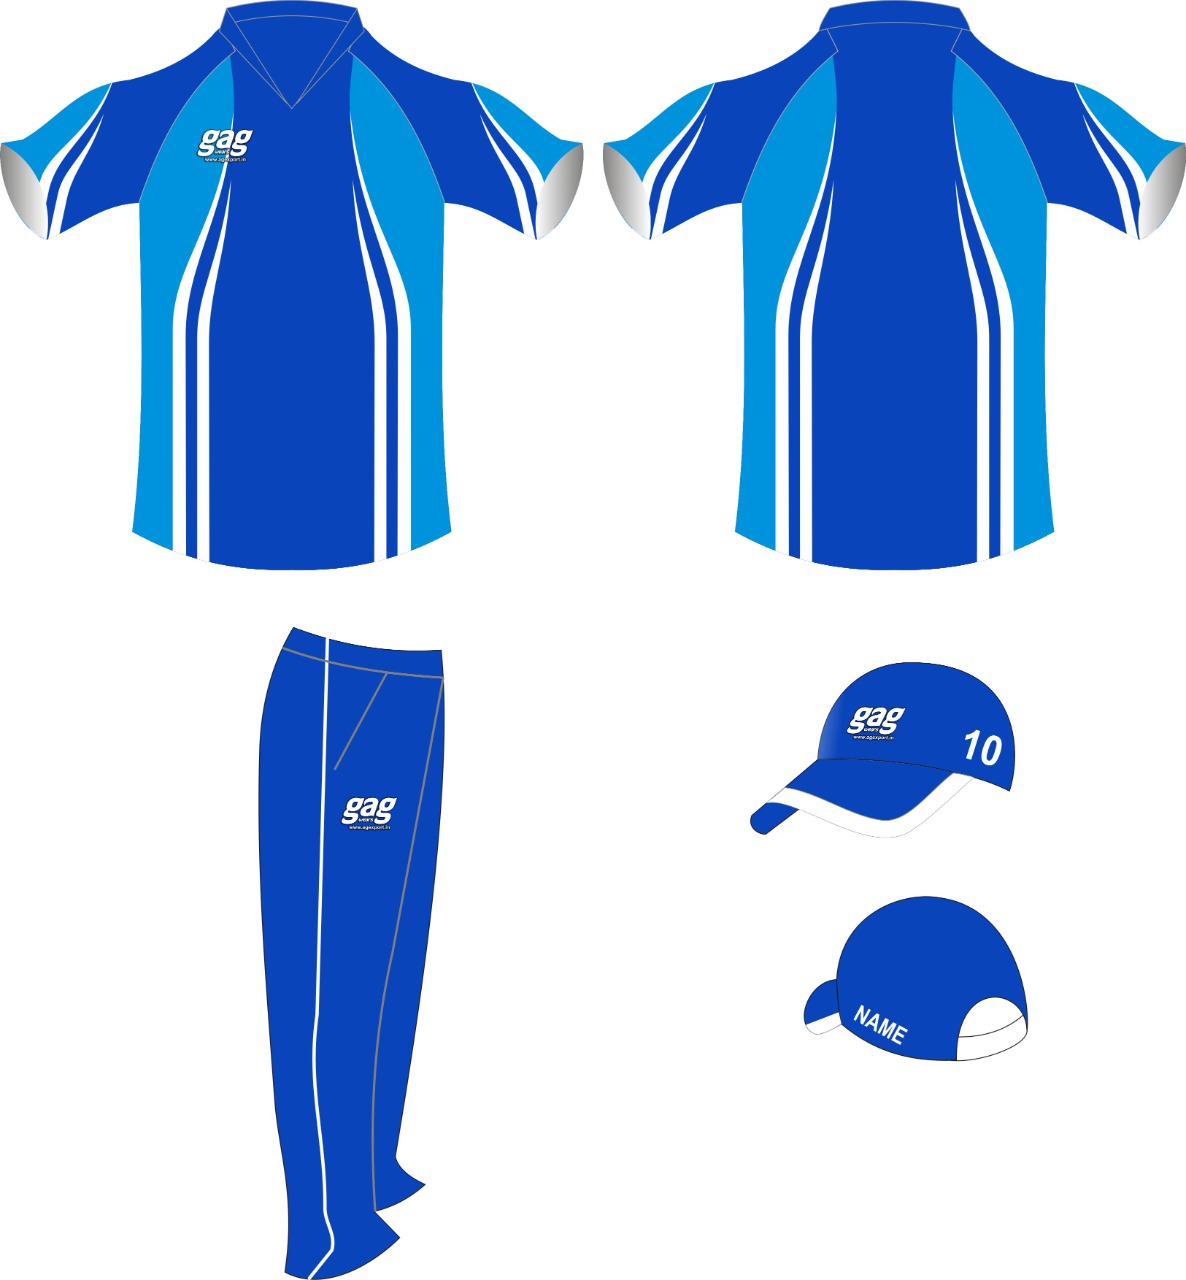 Mens Cricket Trousers Manufacturers in Jalandhar in Australia